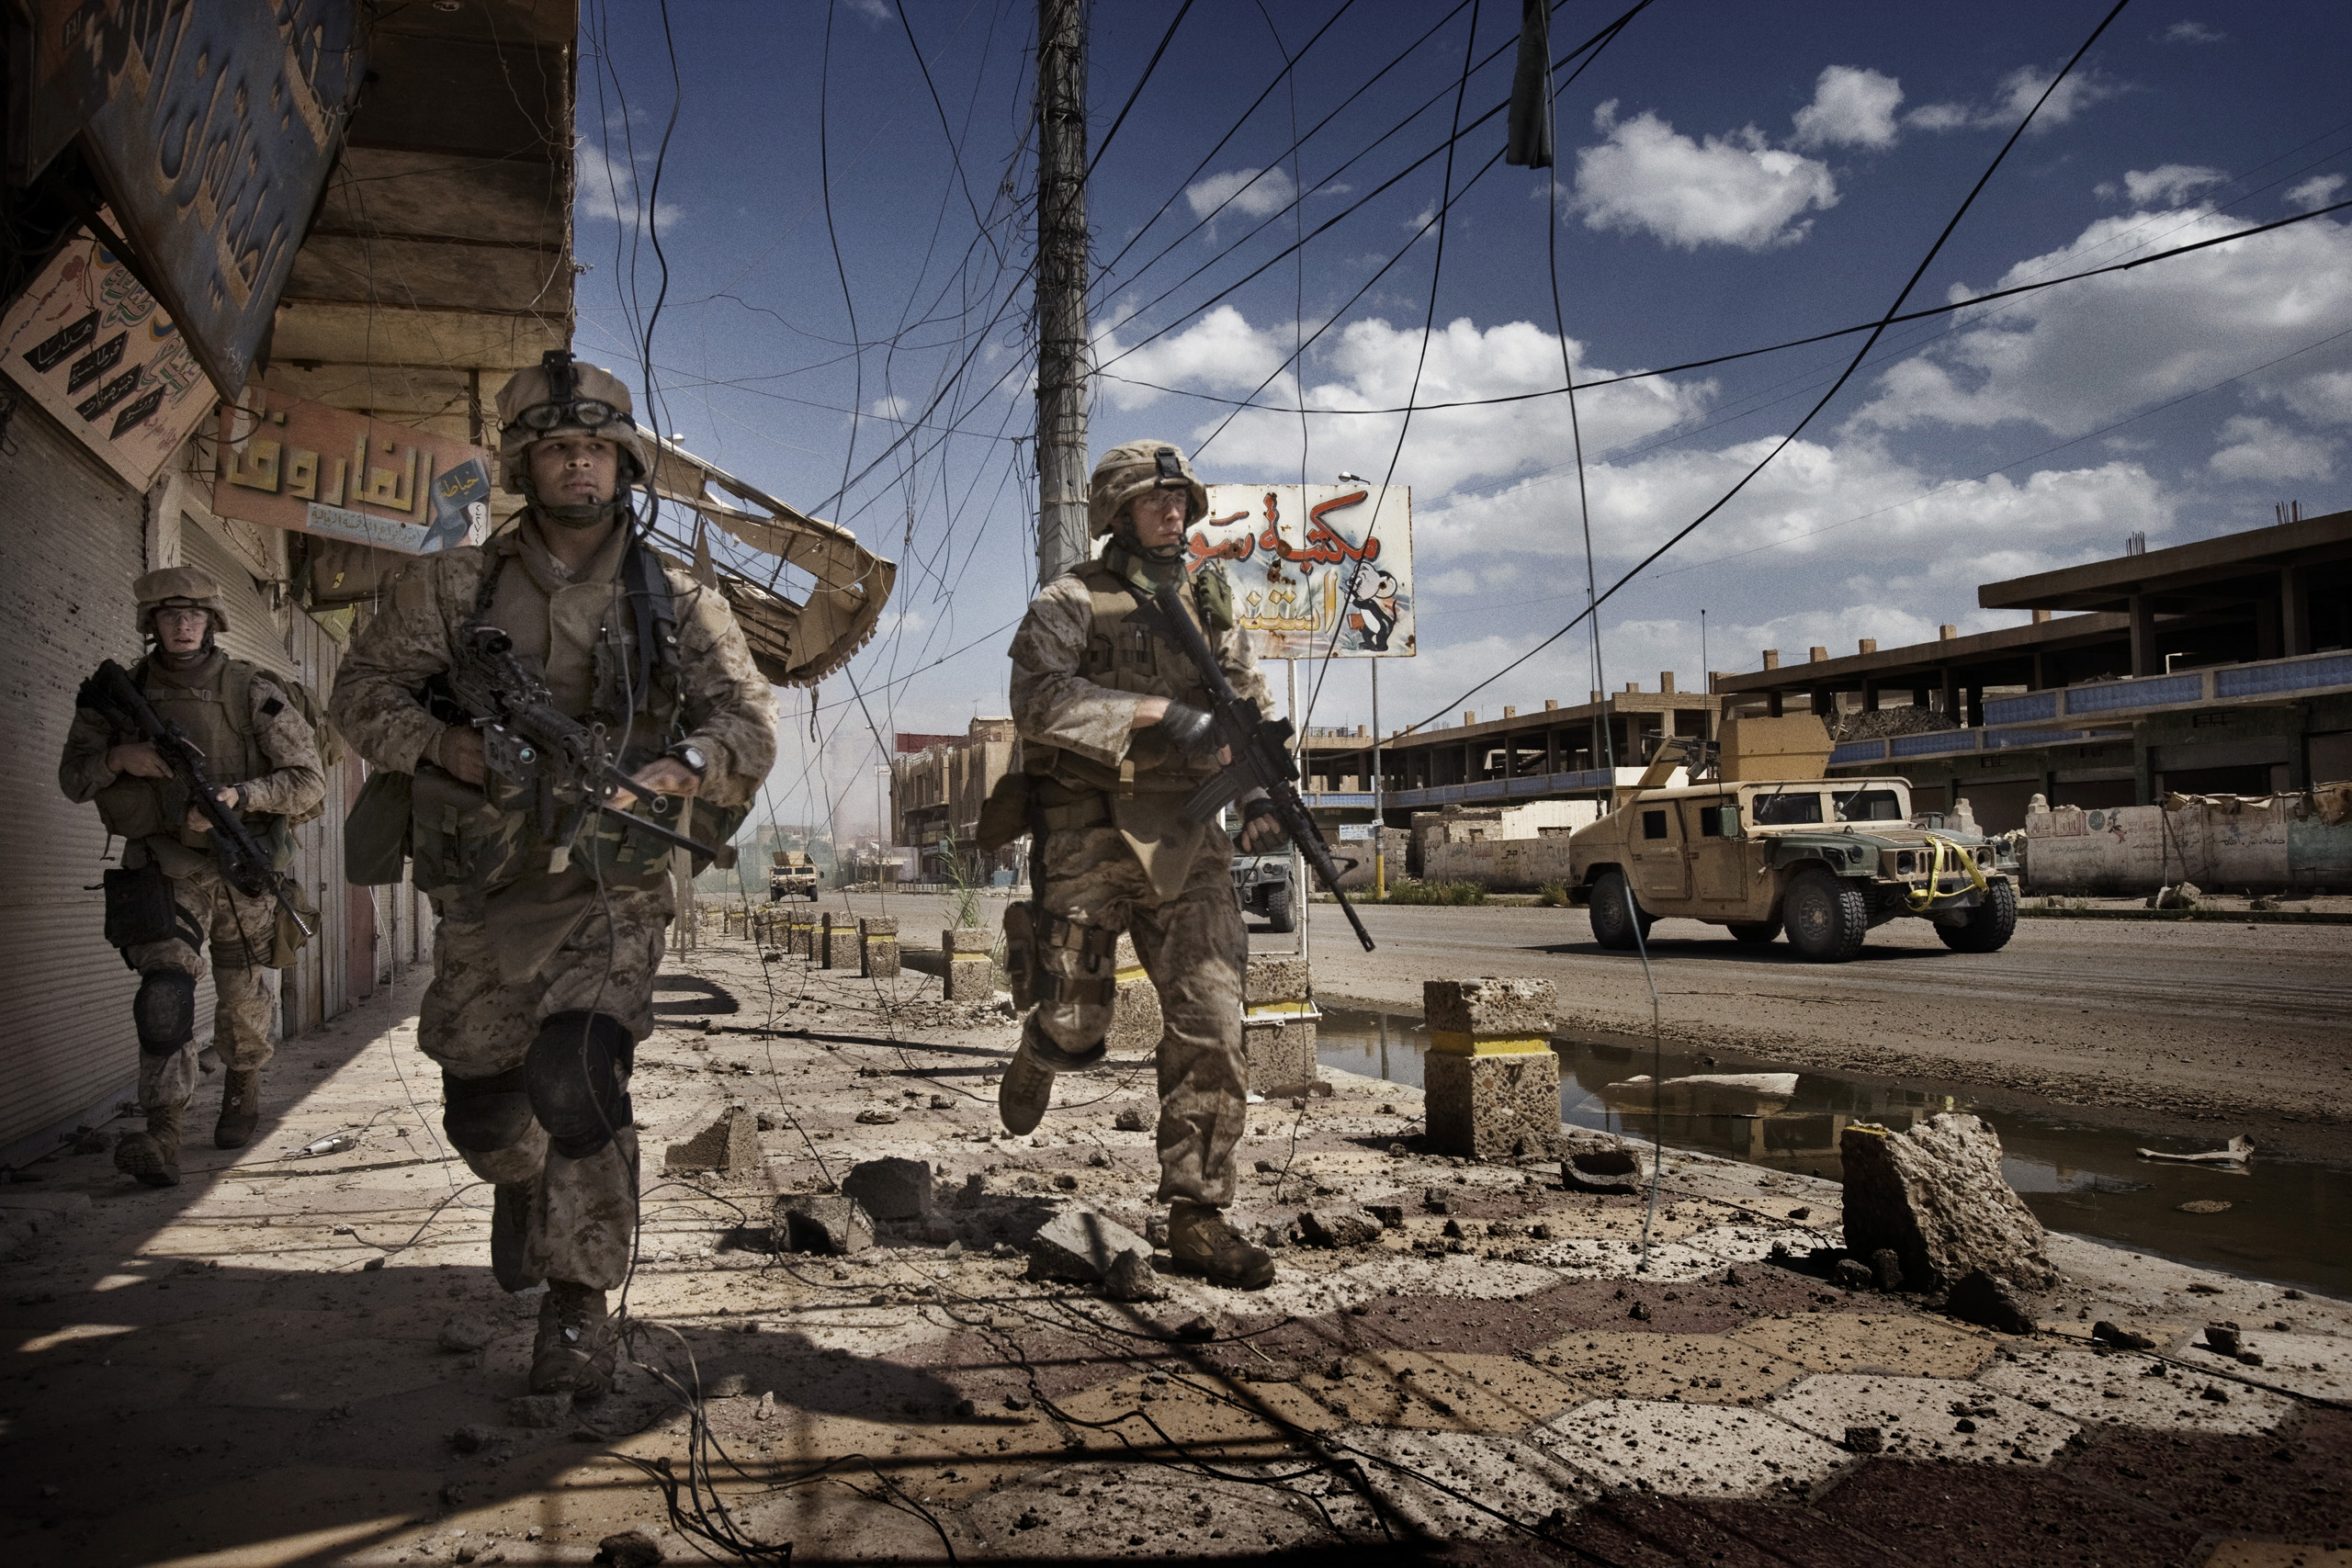 U.S. Marines from the 3rd Battalion, 8th Marine Regiment, Kilo company scan streets and surrounding buildings for insurgents during a patrol in Ramadi, Iraq, April 27, 2006.